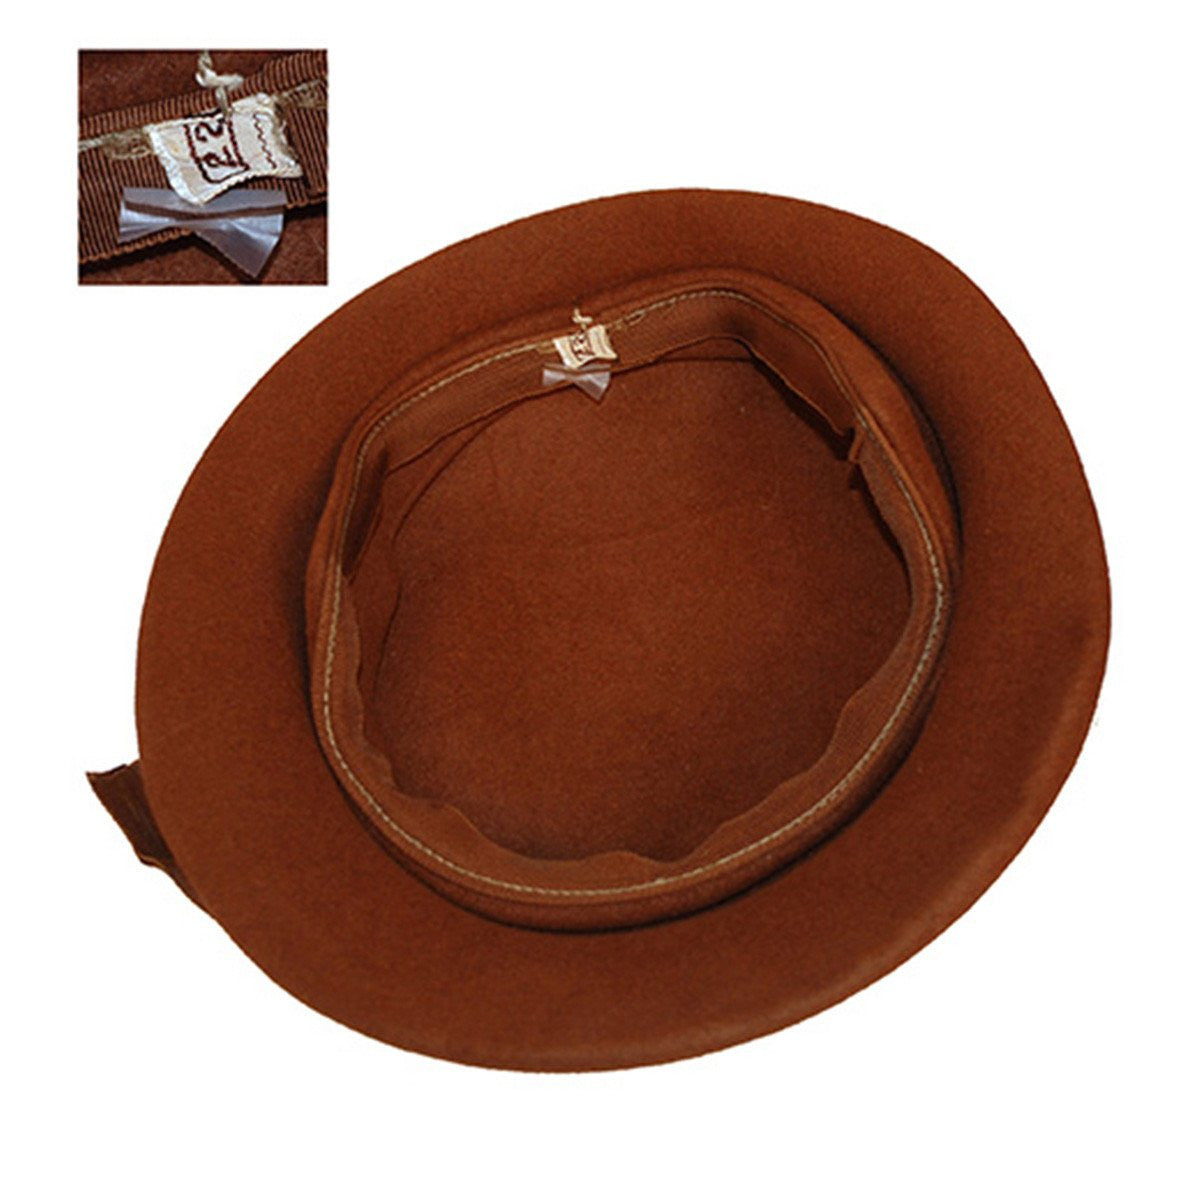 1950s Dish Hat, Brown Felt with Rhinestone Buckle 5, Hat Size 22